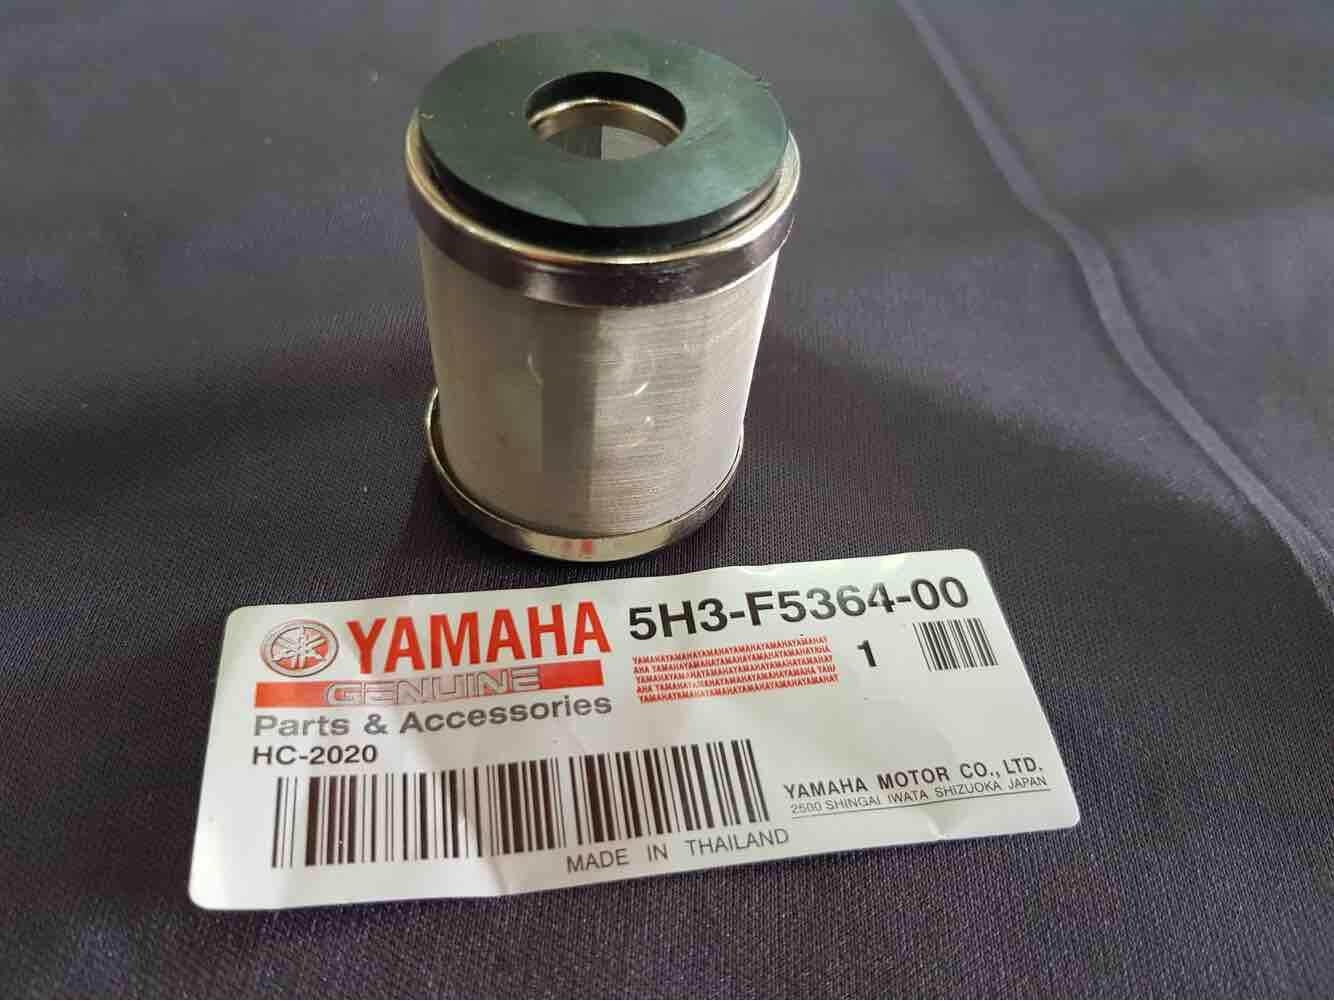 Made in Thailand Exhaust & Accessories price in Malaysia